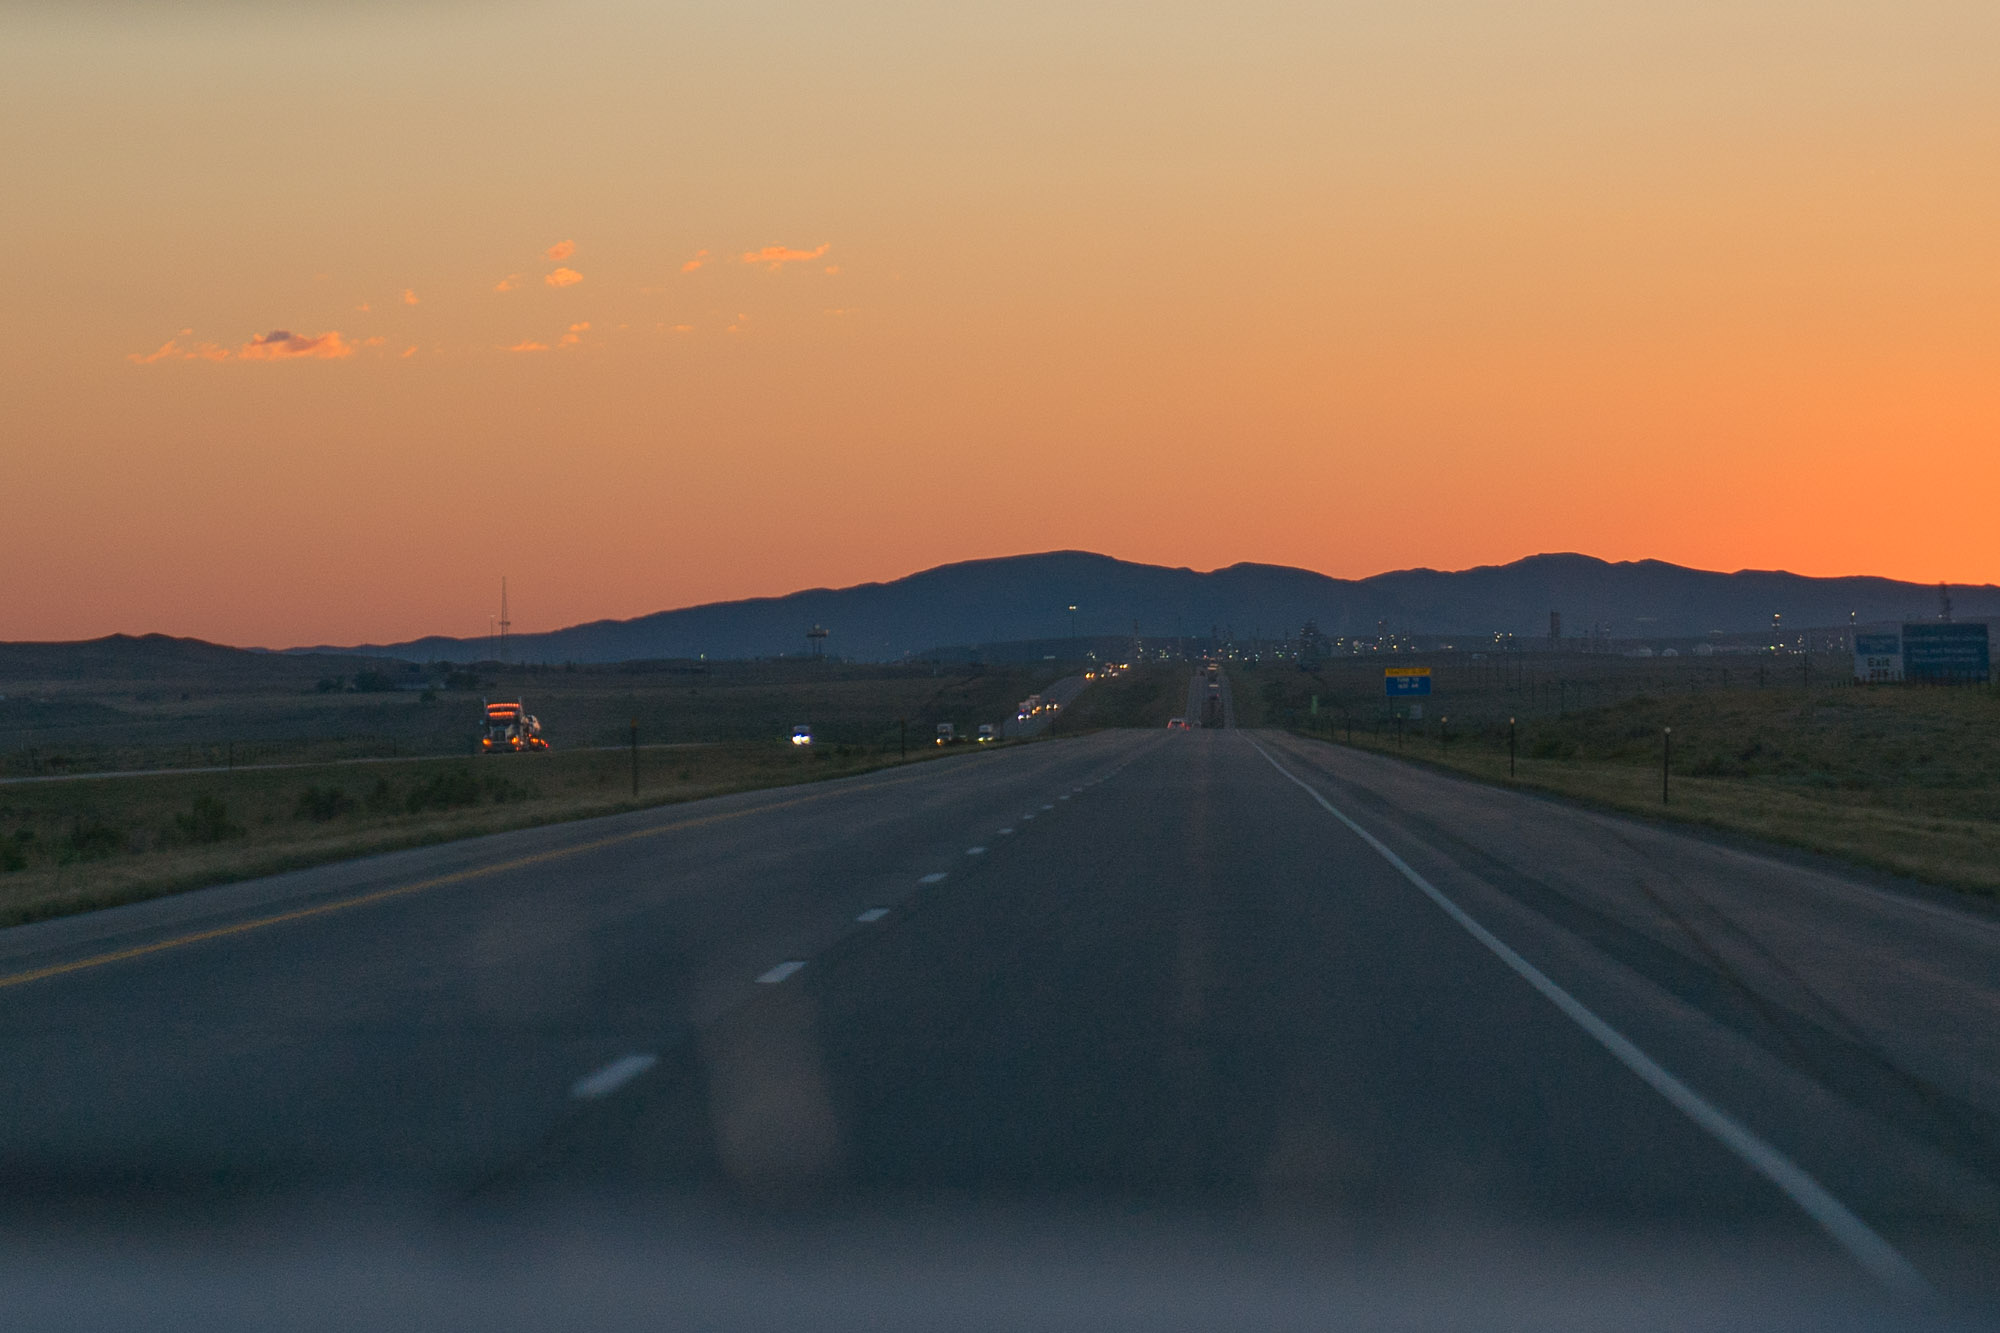 The sunset with beautiful orange and yellows over I-80 in Wyoming.